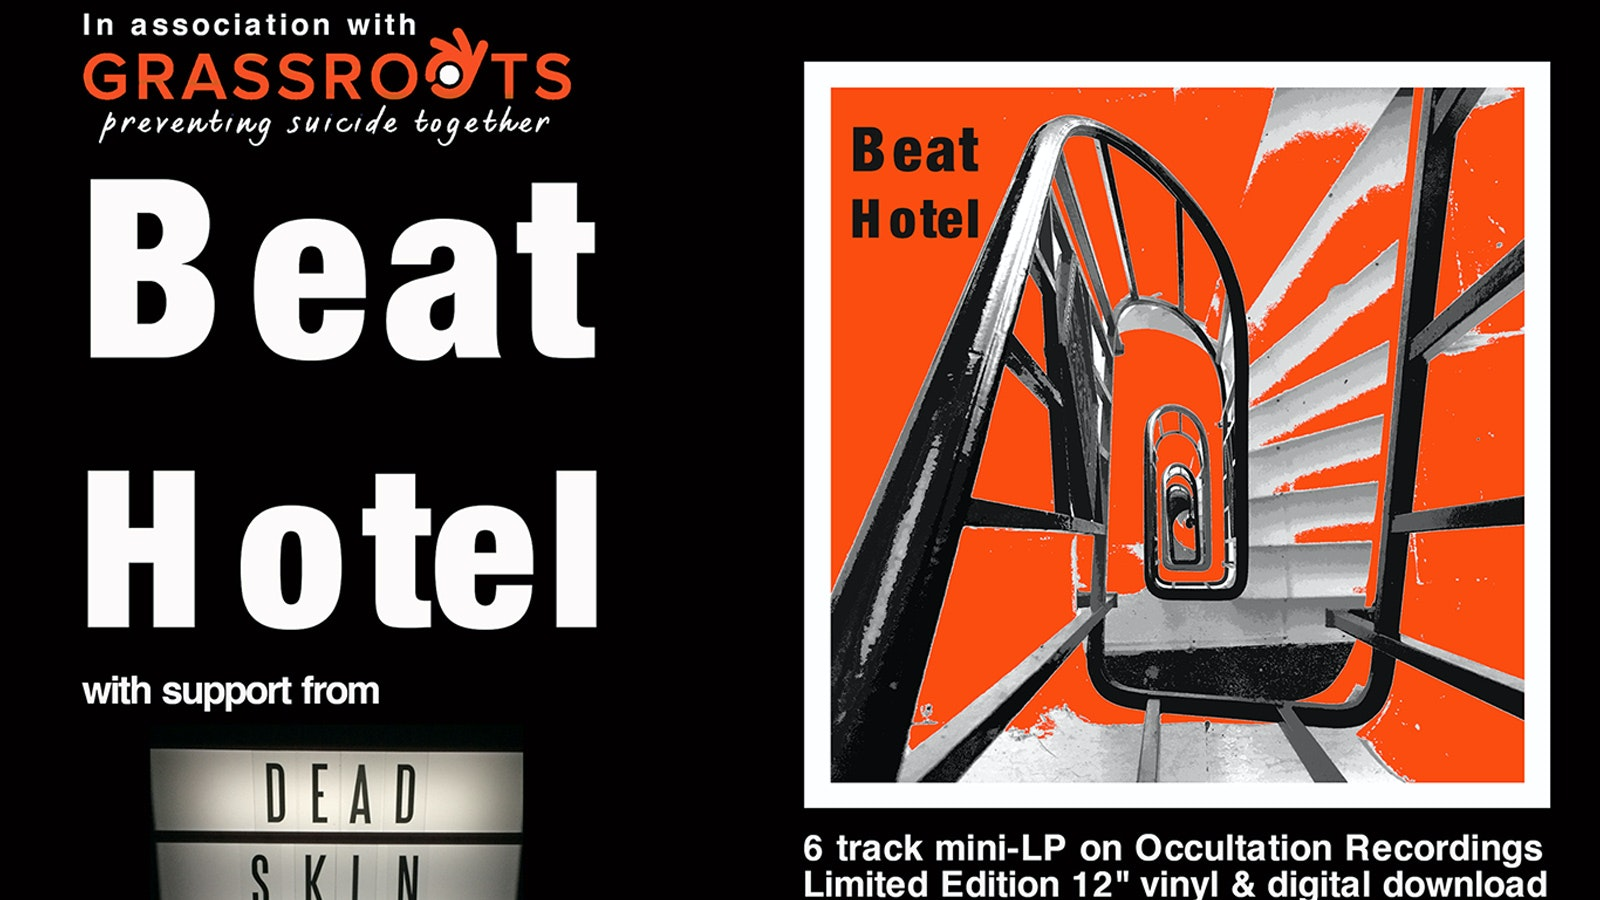 Beat Hotel EP Launch in aid of Grassroots Suicide Prevention